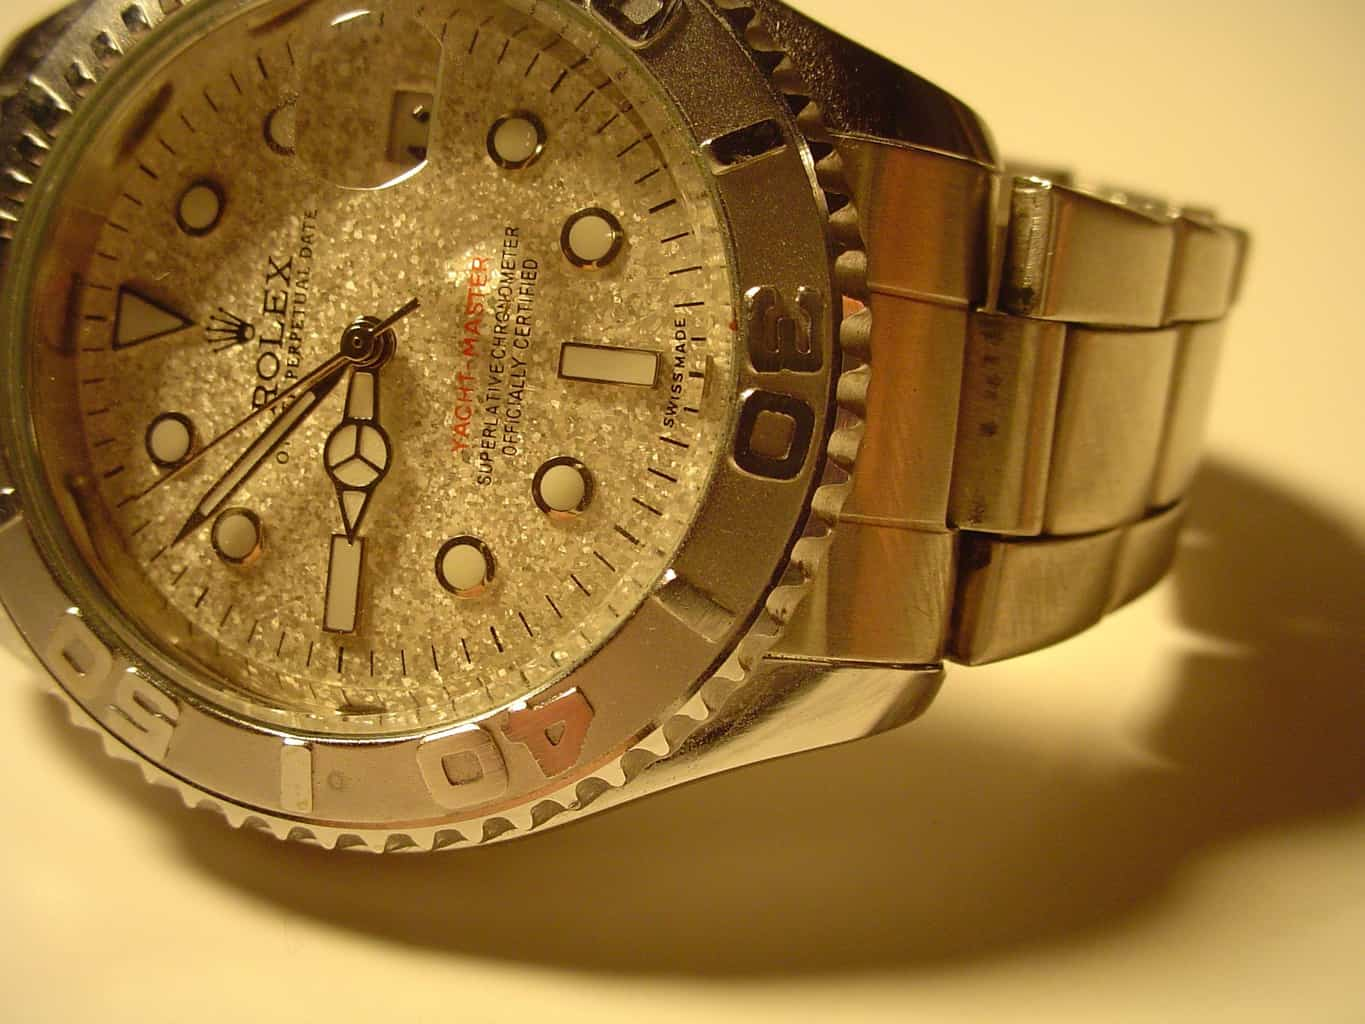 Rolex Watch Loans Phoenix locals come back to in a pinch.